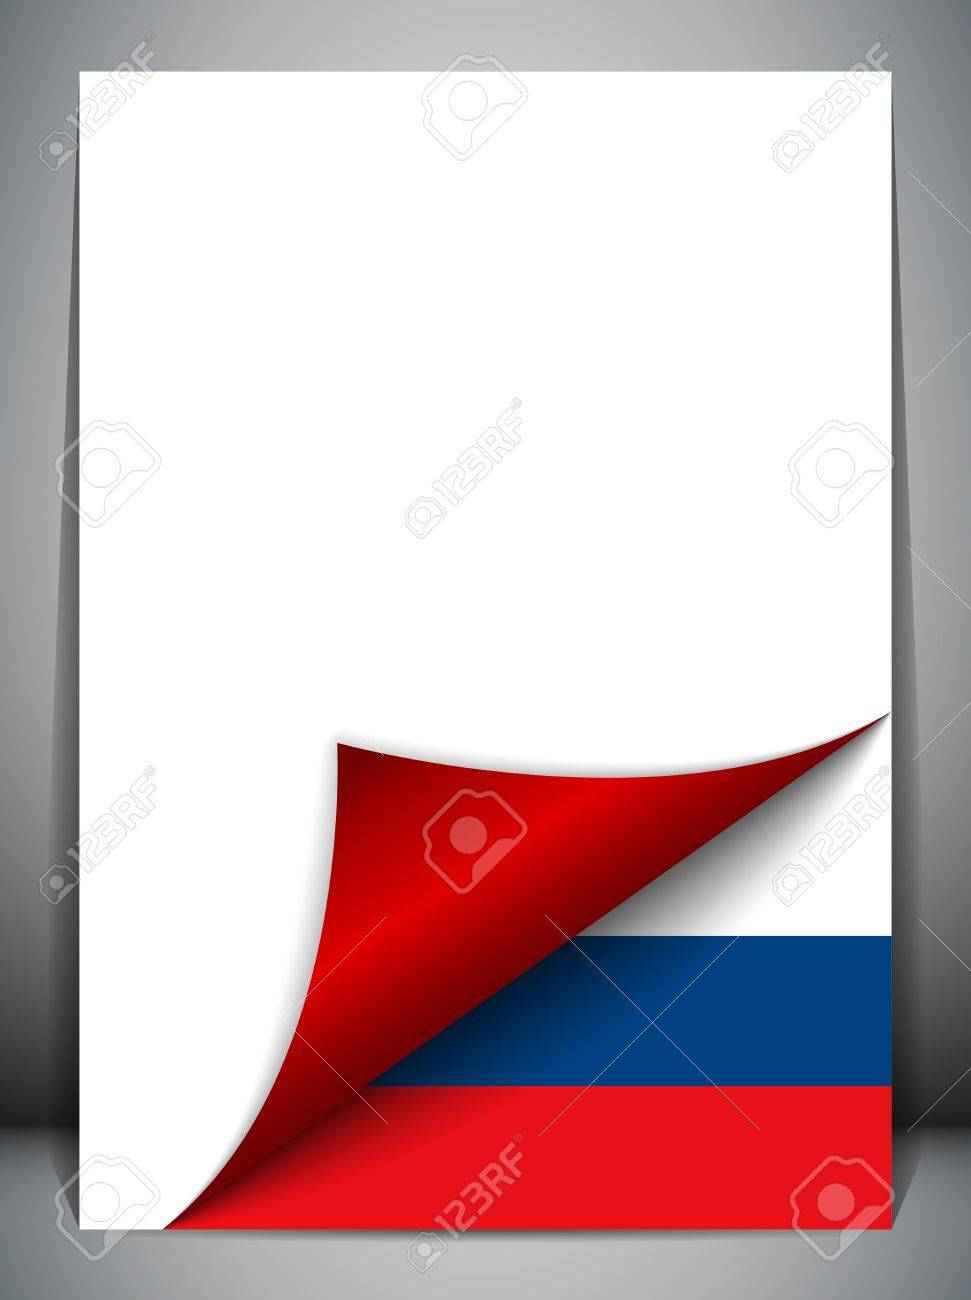 Russia Country Flag Turning Page Stock Vector - 16659240